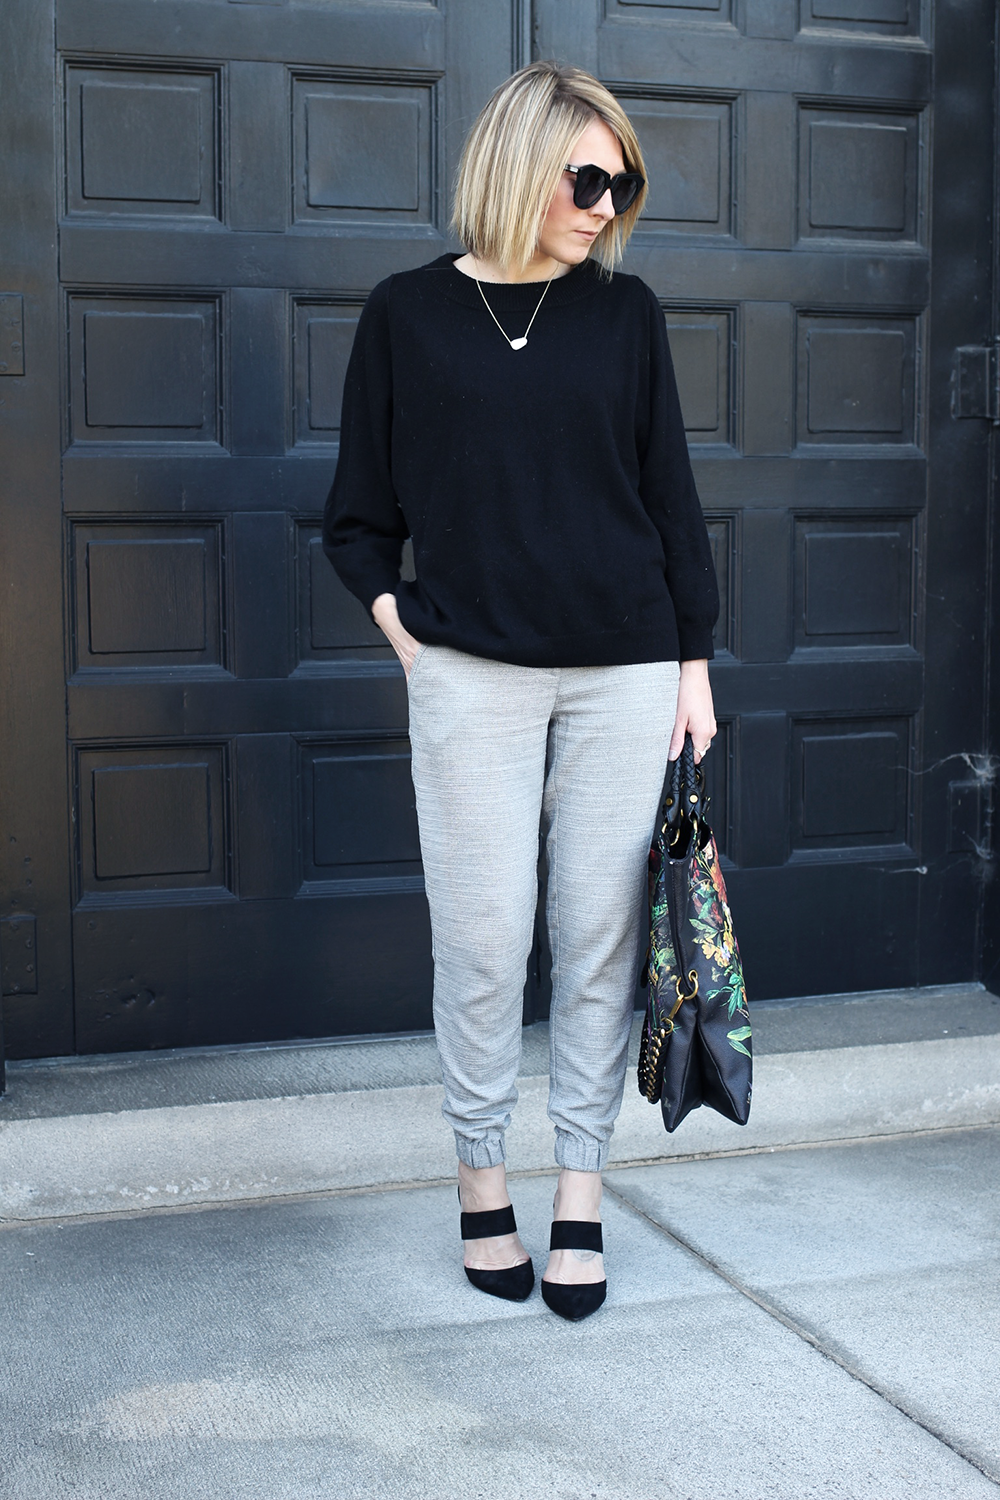 Black Oversized Sweater, Grey Jogger Pants, Karen Walker Sunglasses